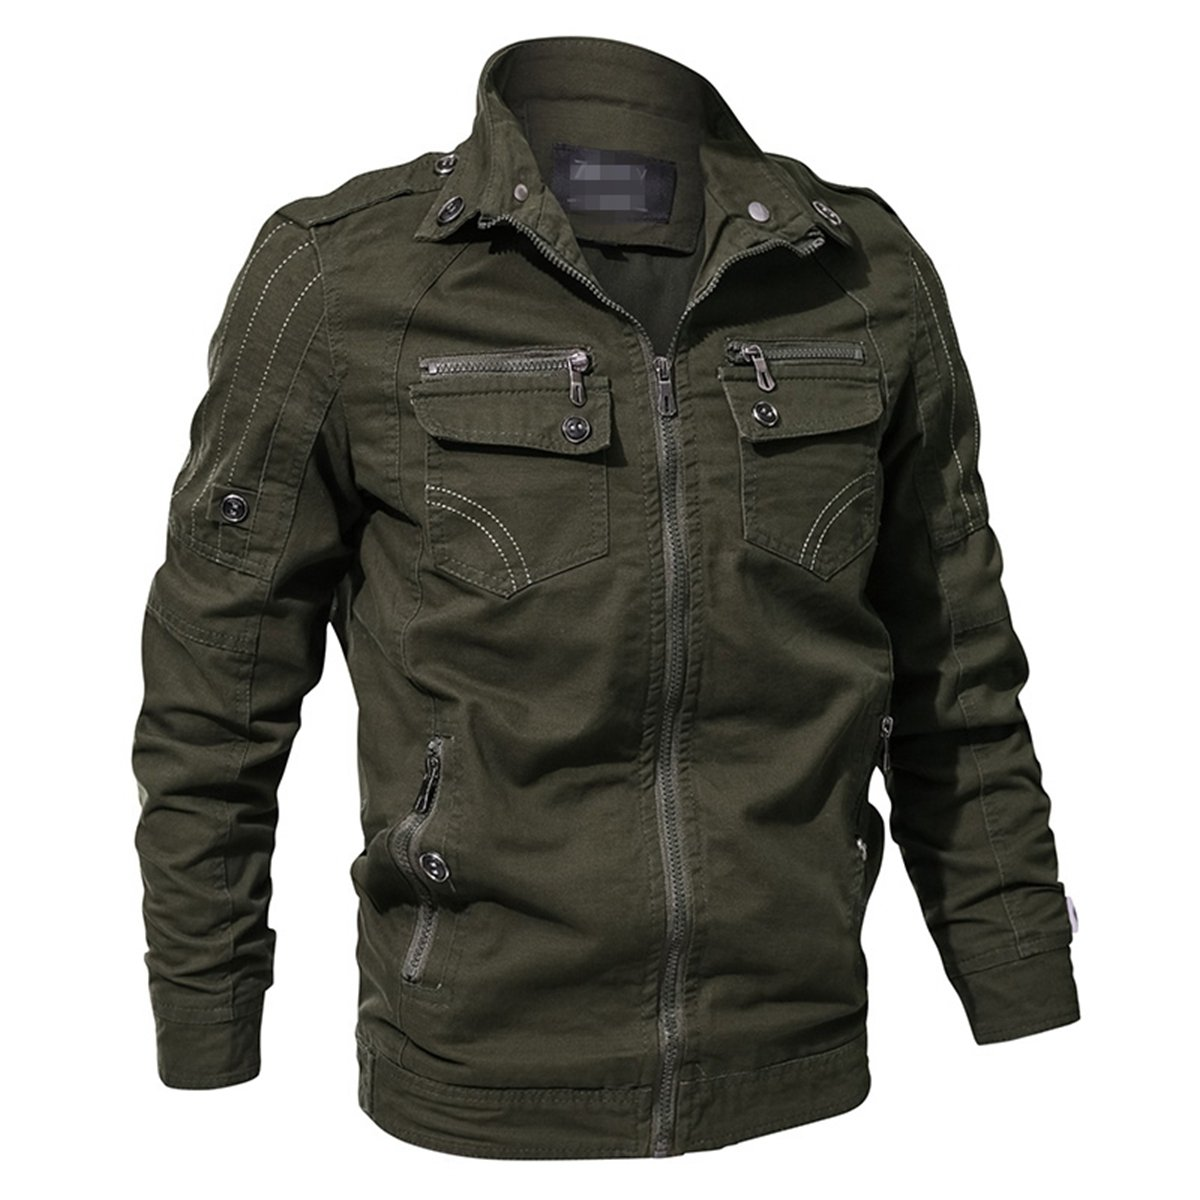 RockJay Men Military Army Jacket Spring Cargo Tactical Jacket Casual Autumn Cotton Jackets Coat Army Green 4XL